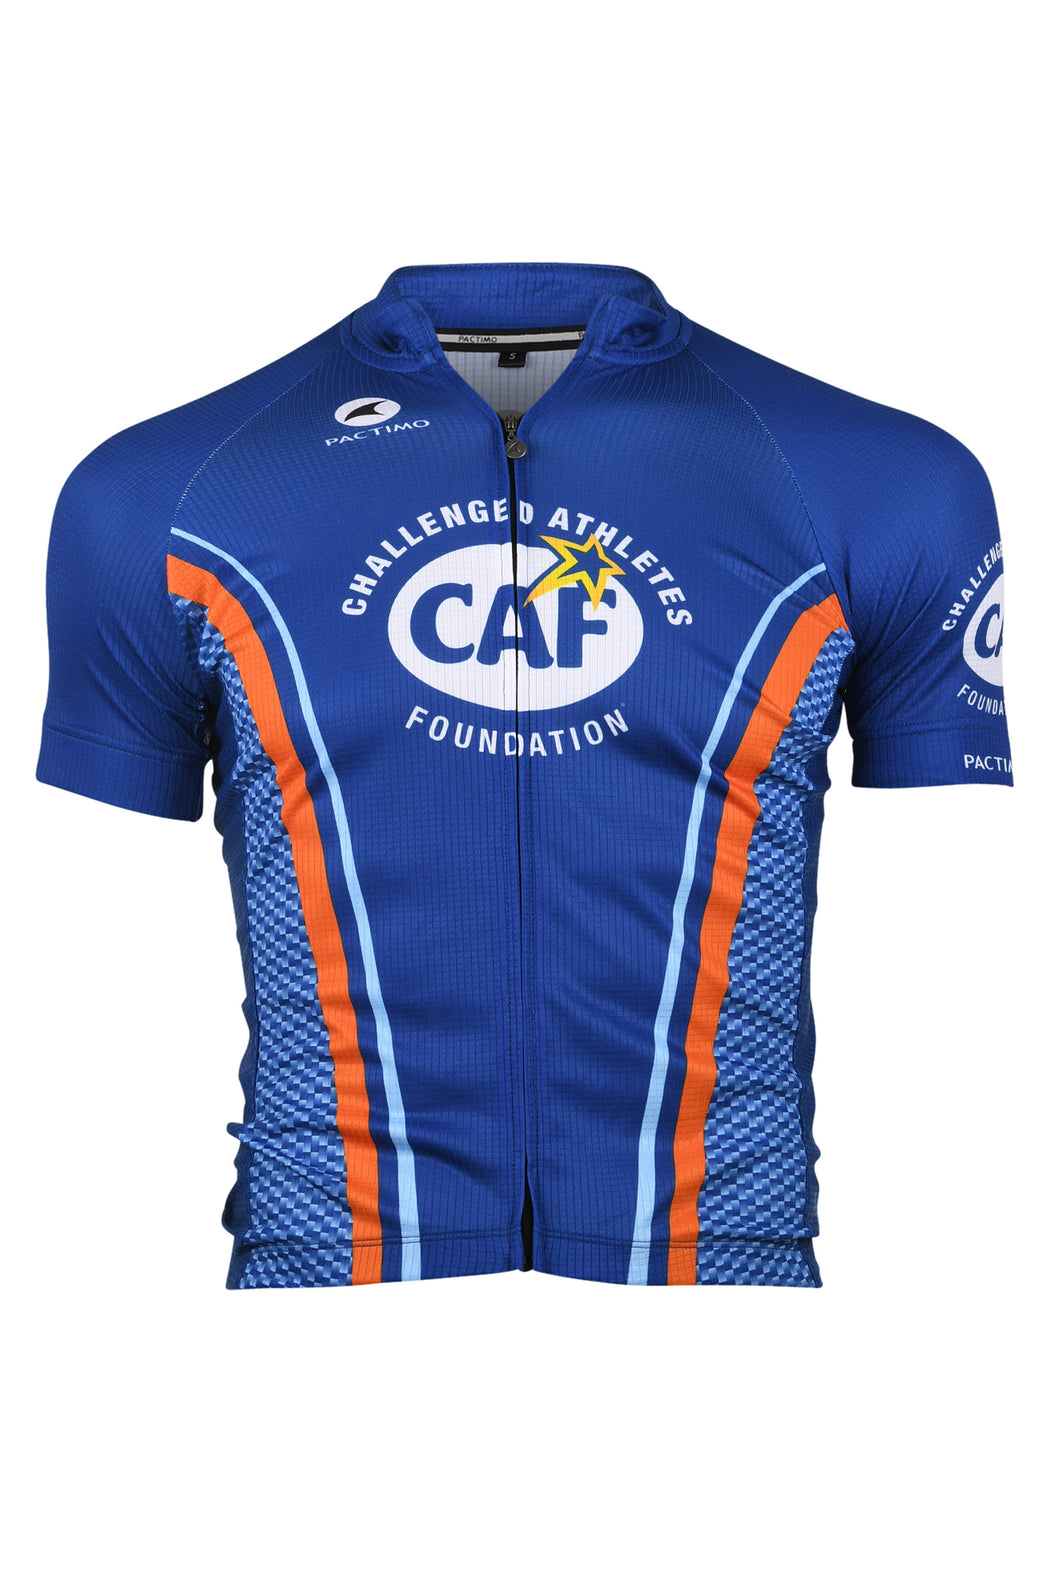 Pactimo Women's Cycling Jersey